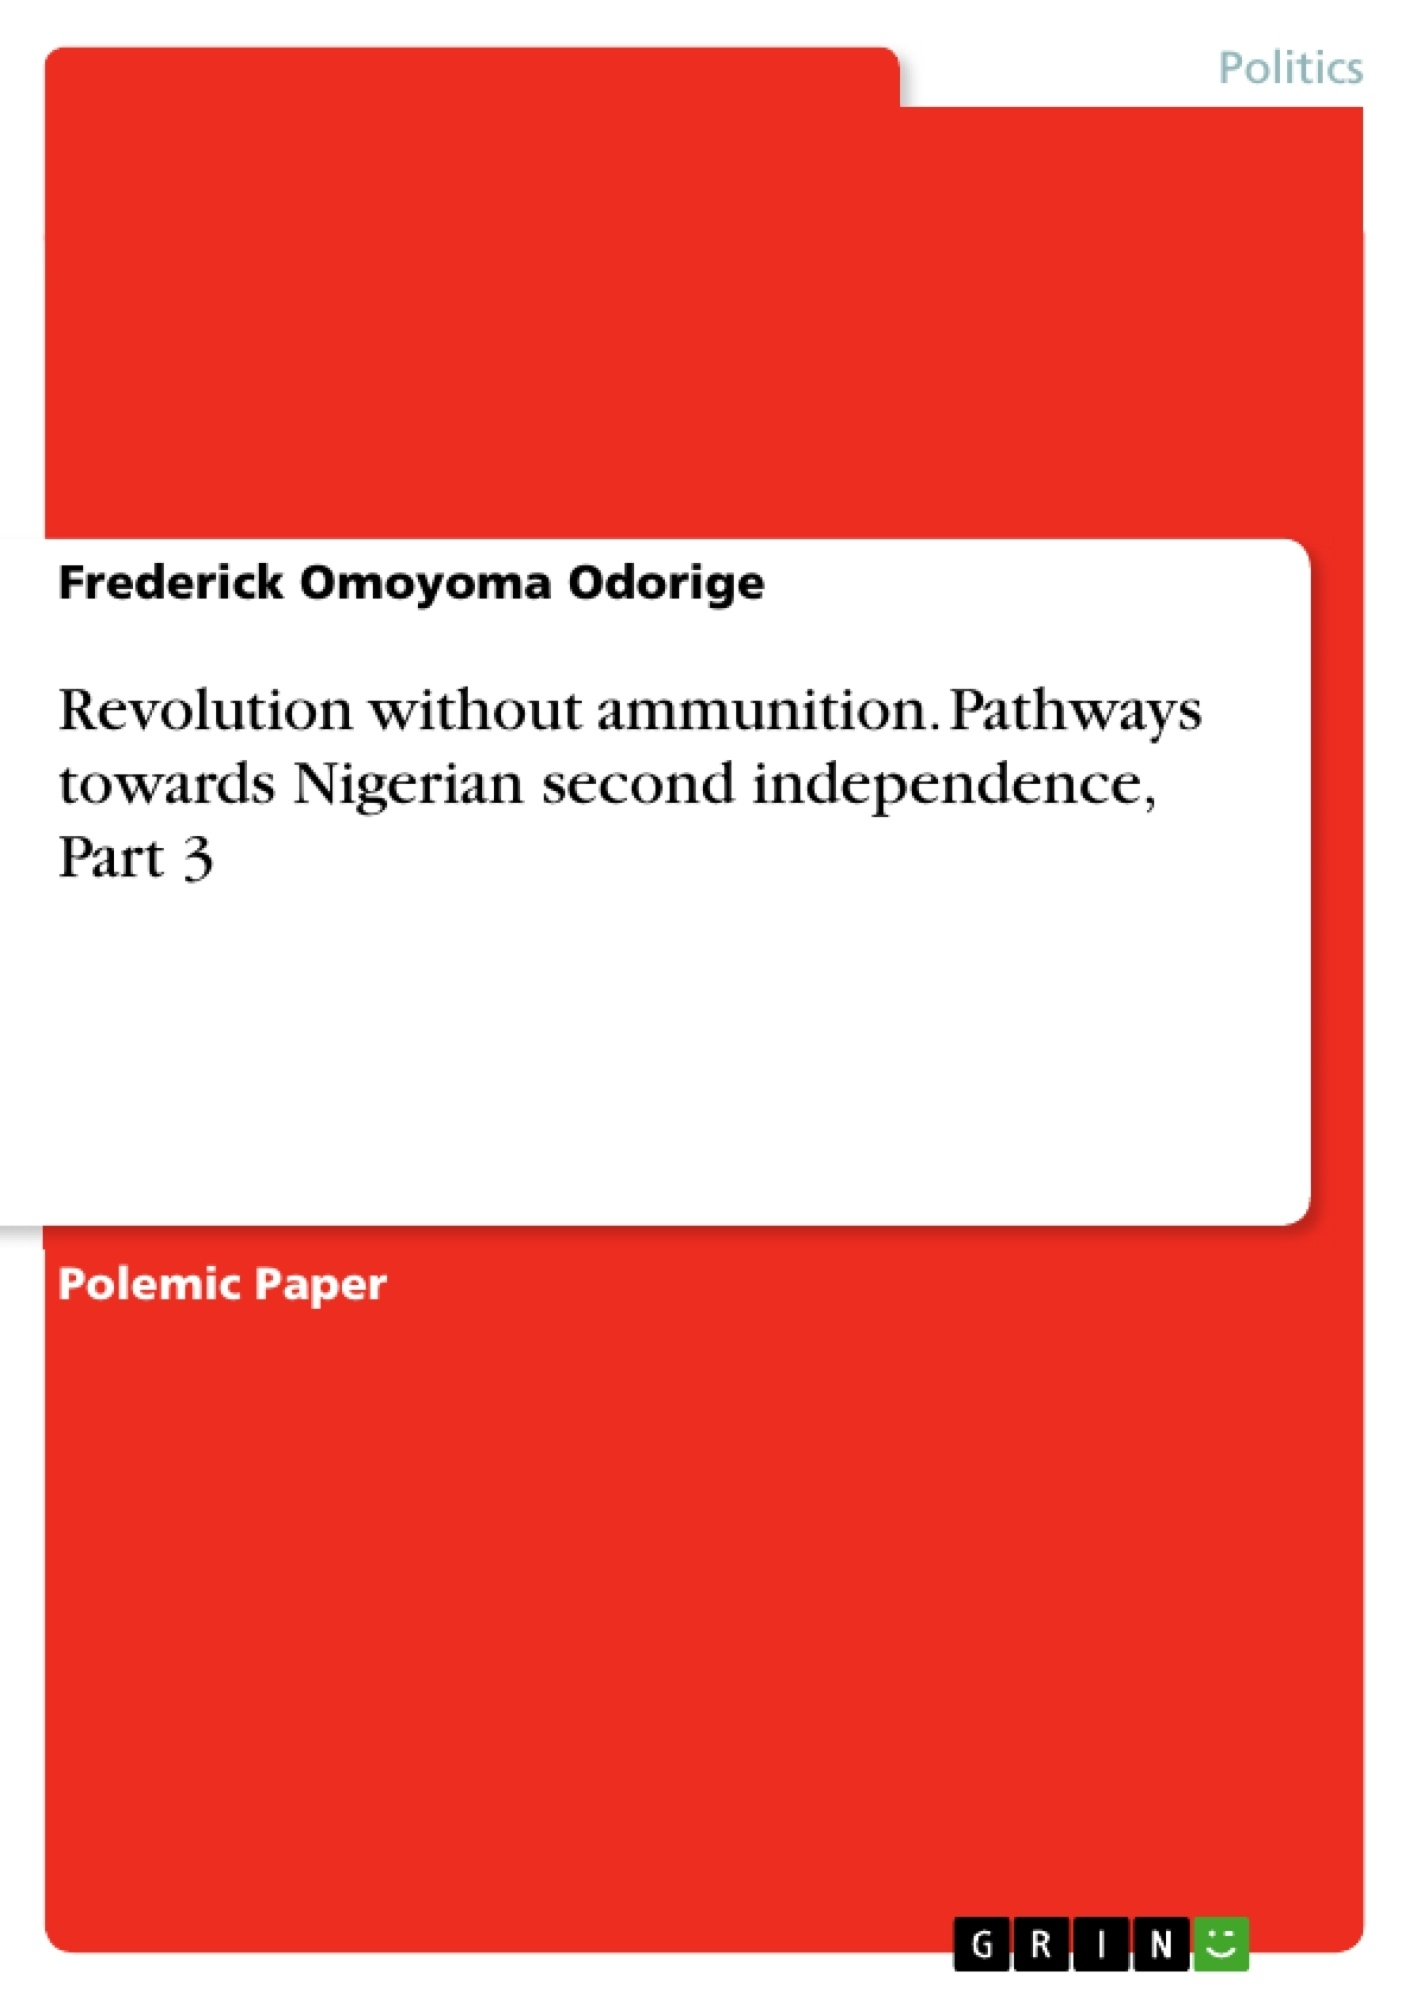 Title: Revolution without ammunition. Pathways towards Nigerian second independence, Part 3